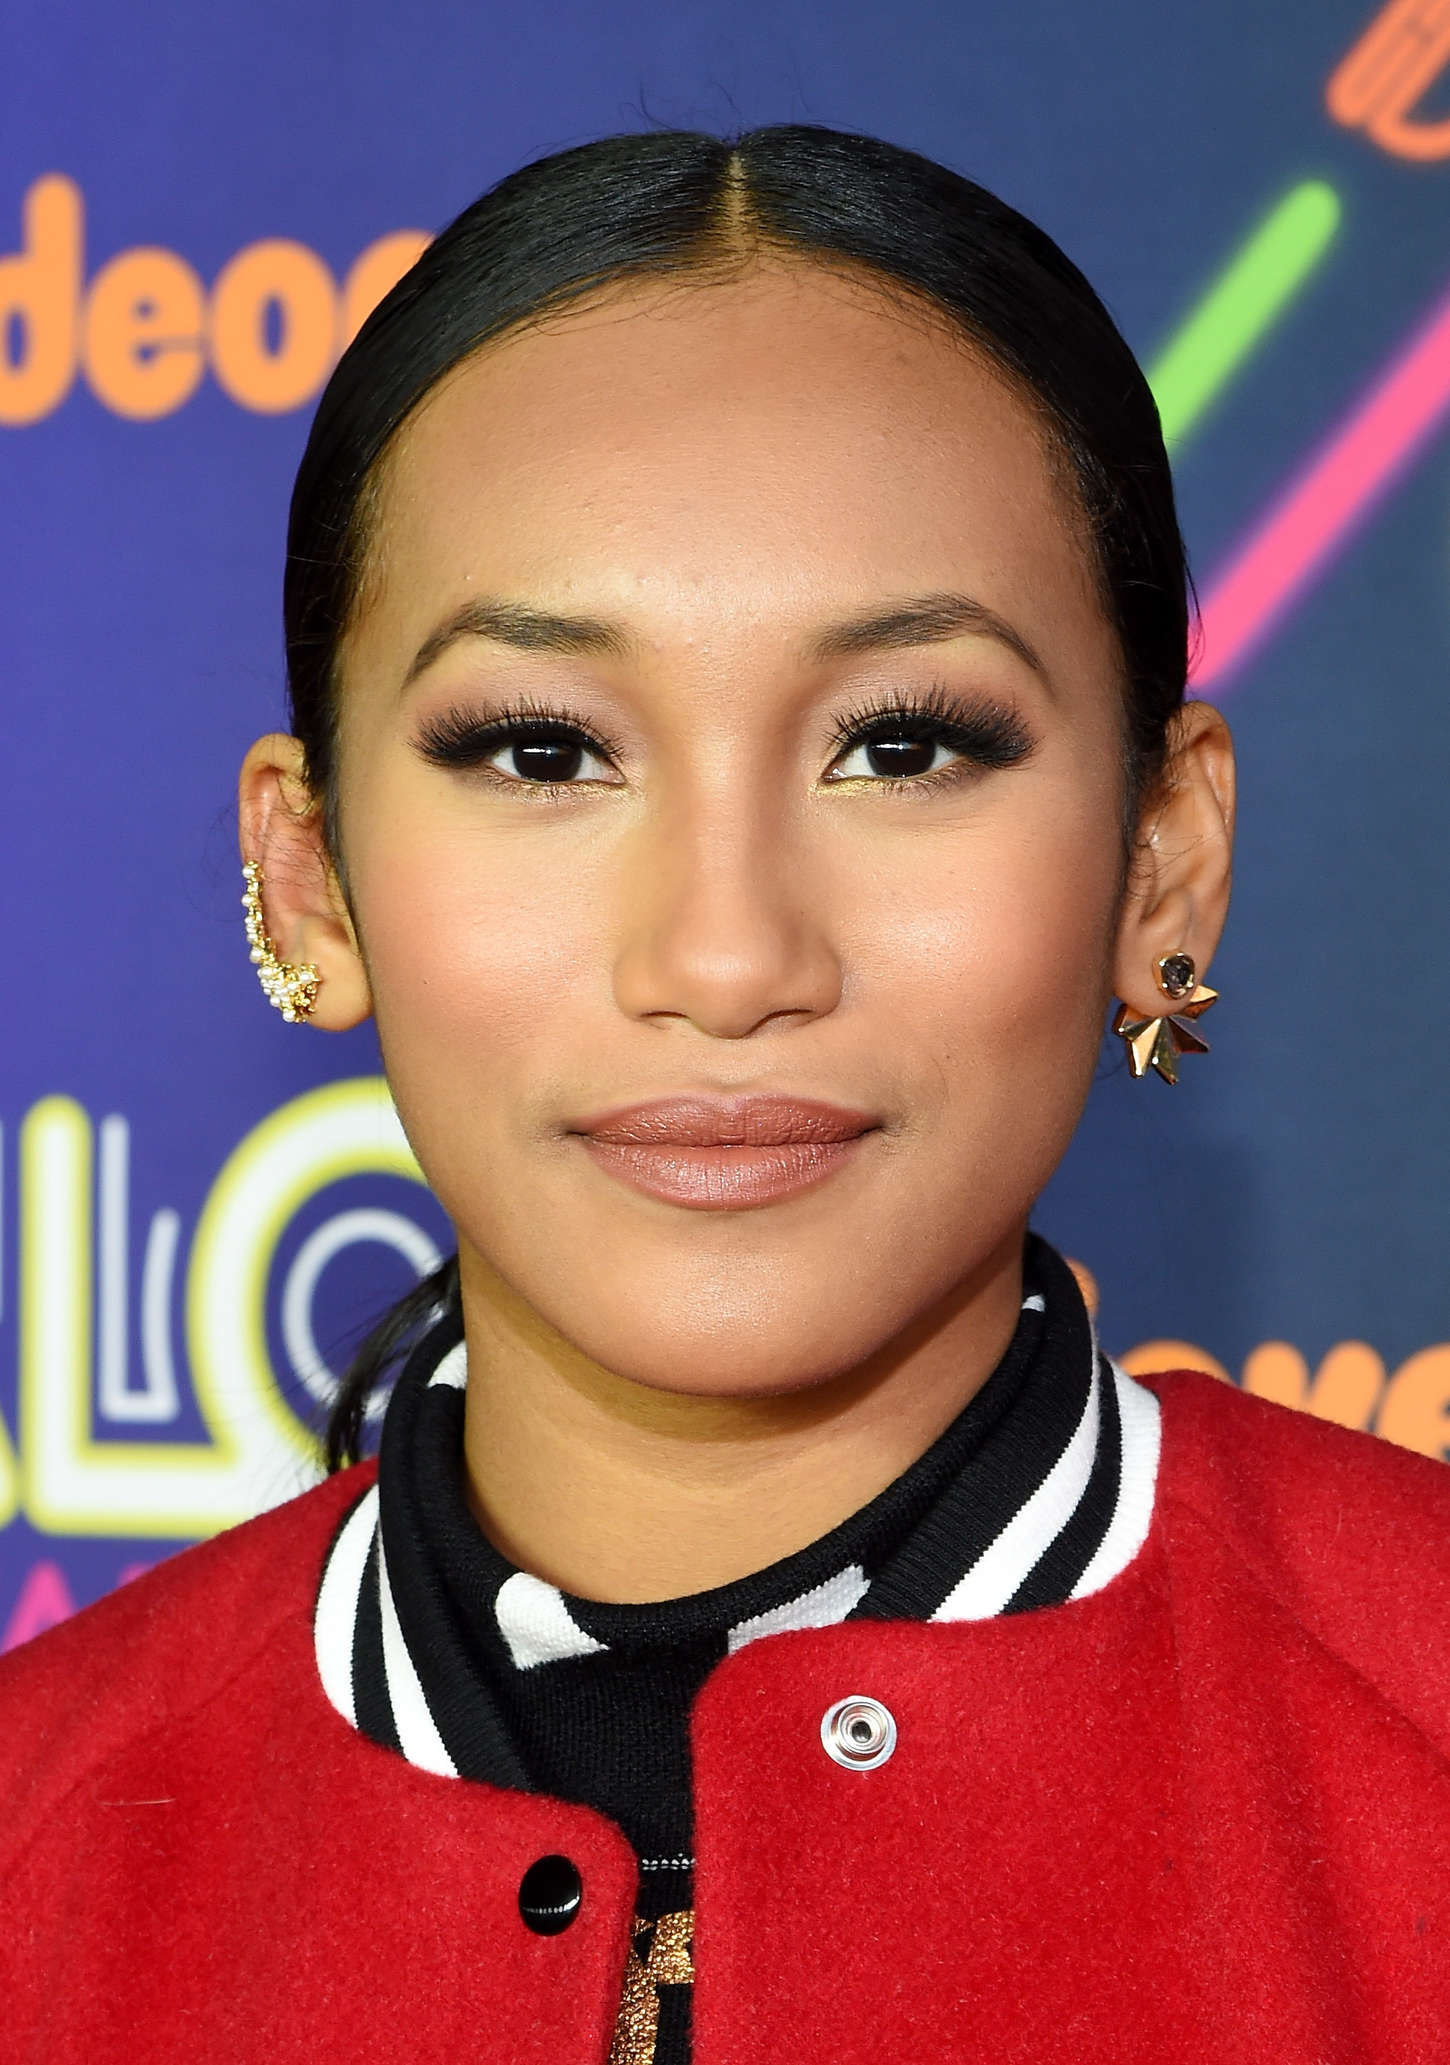 Sydney Park Annual Nickelodeon HALO Awards in New York